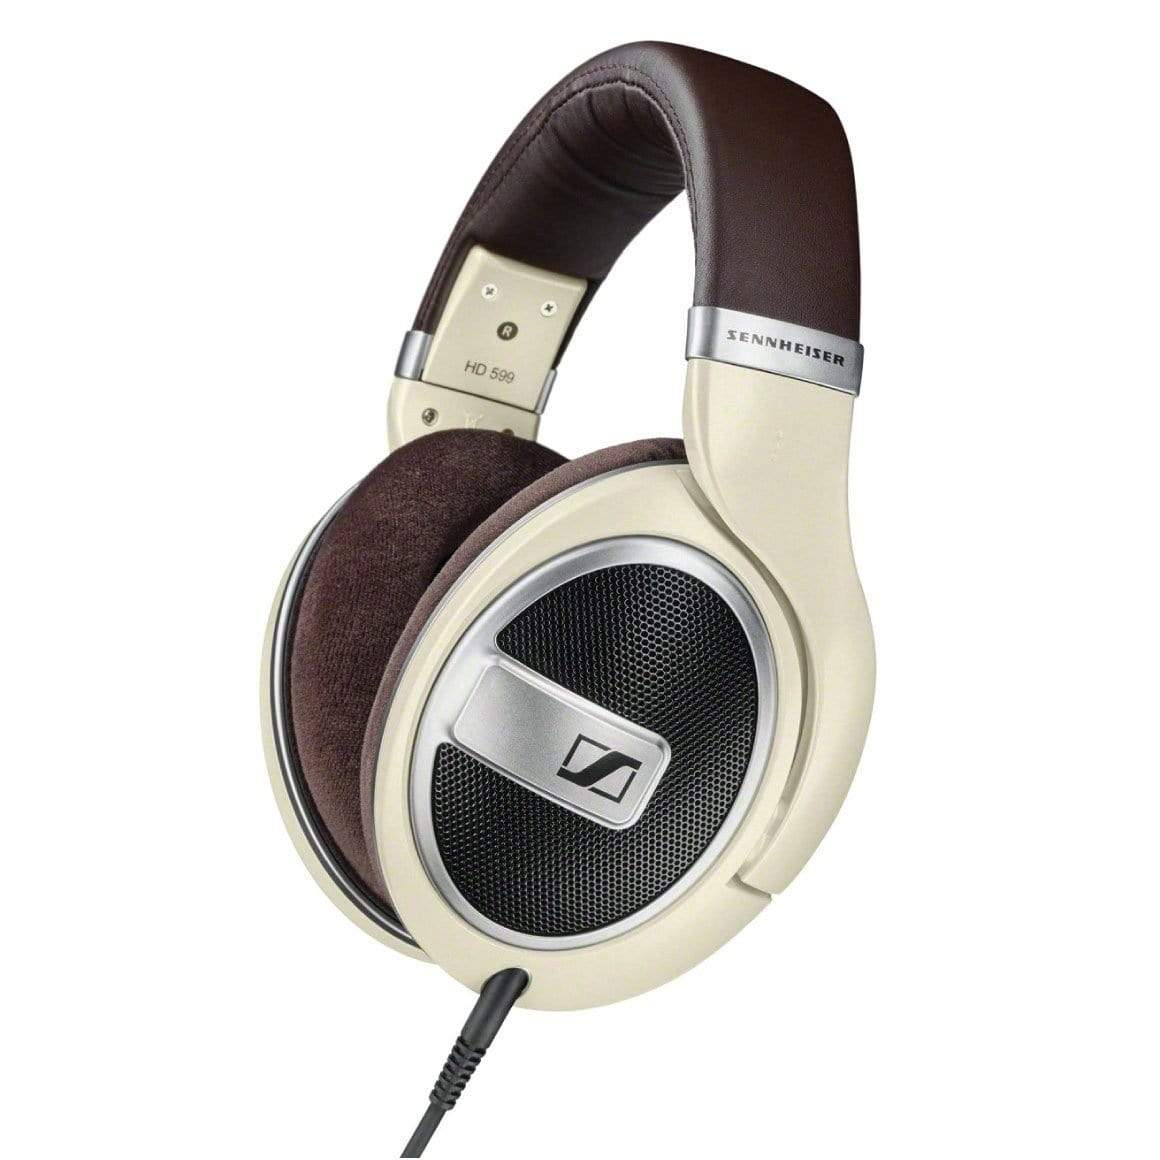 Sennheiser - HD 599vs competitors